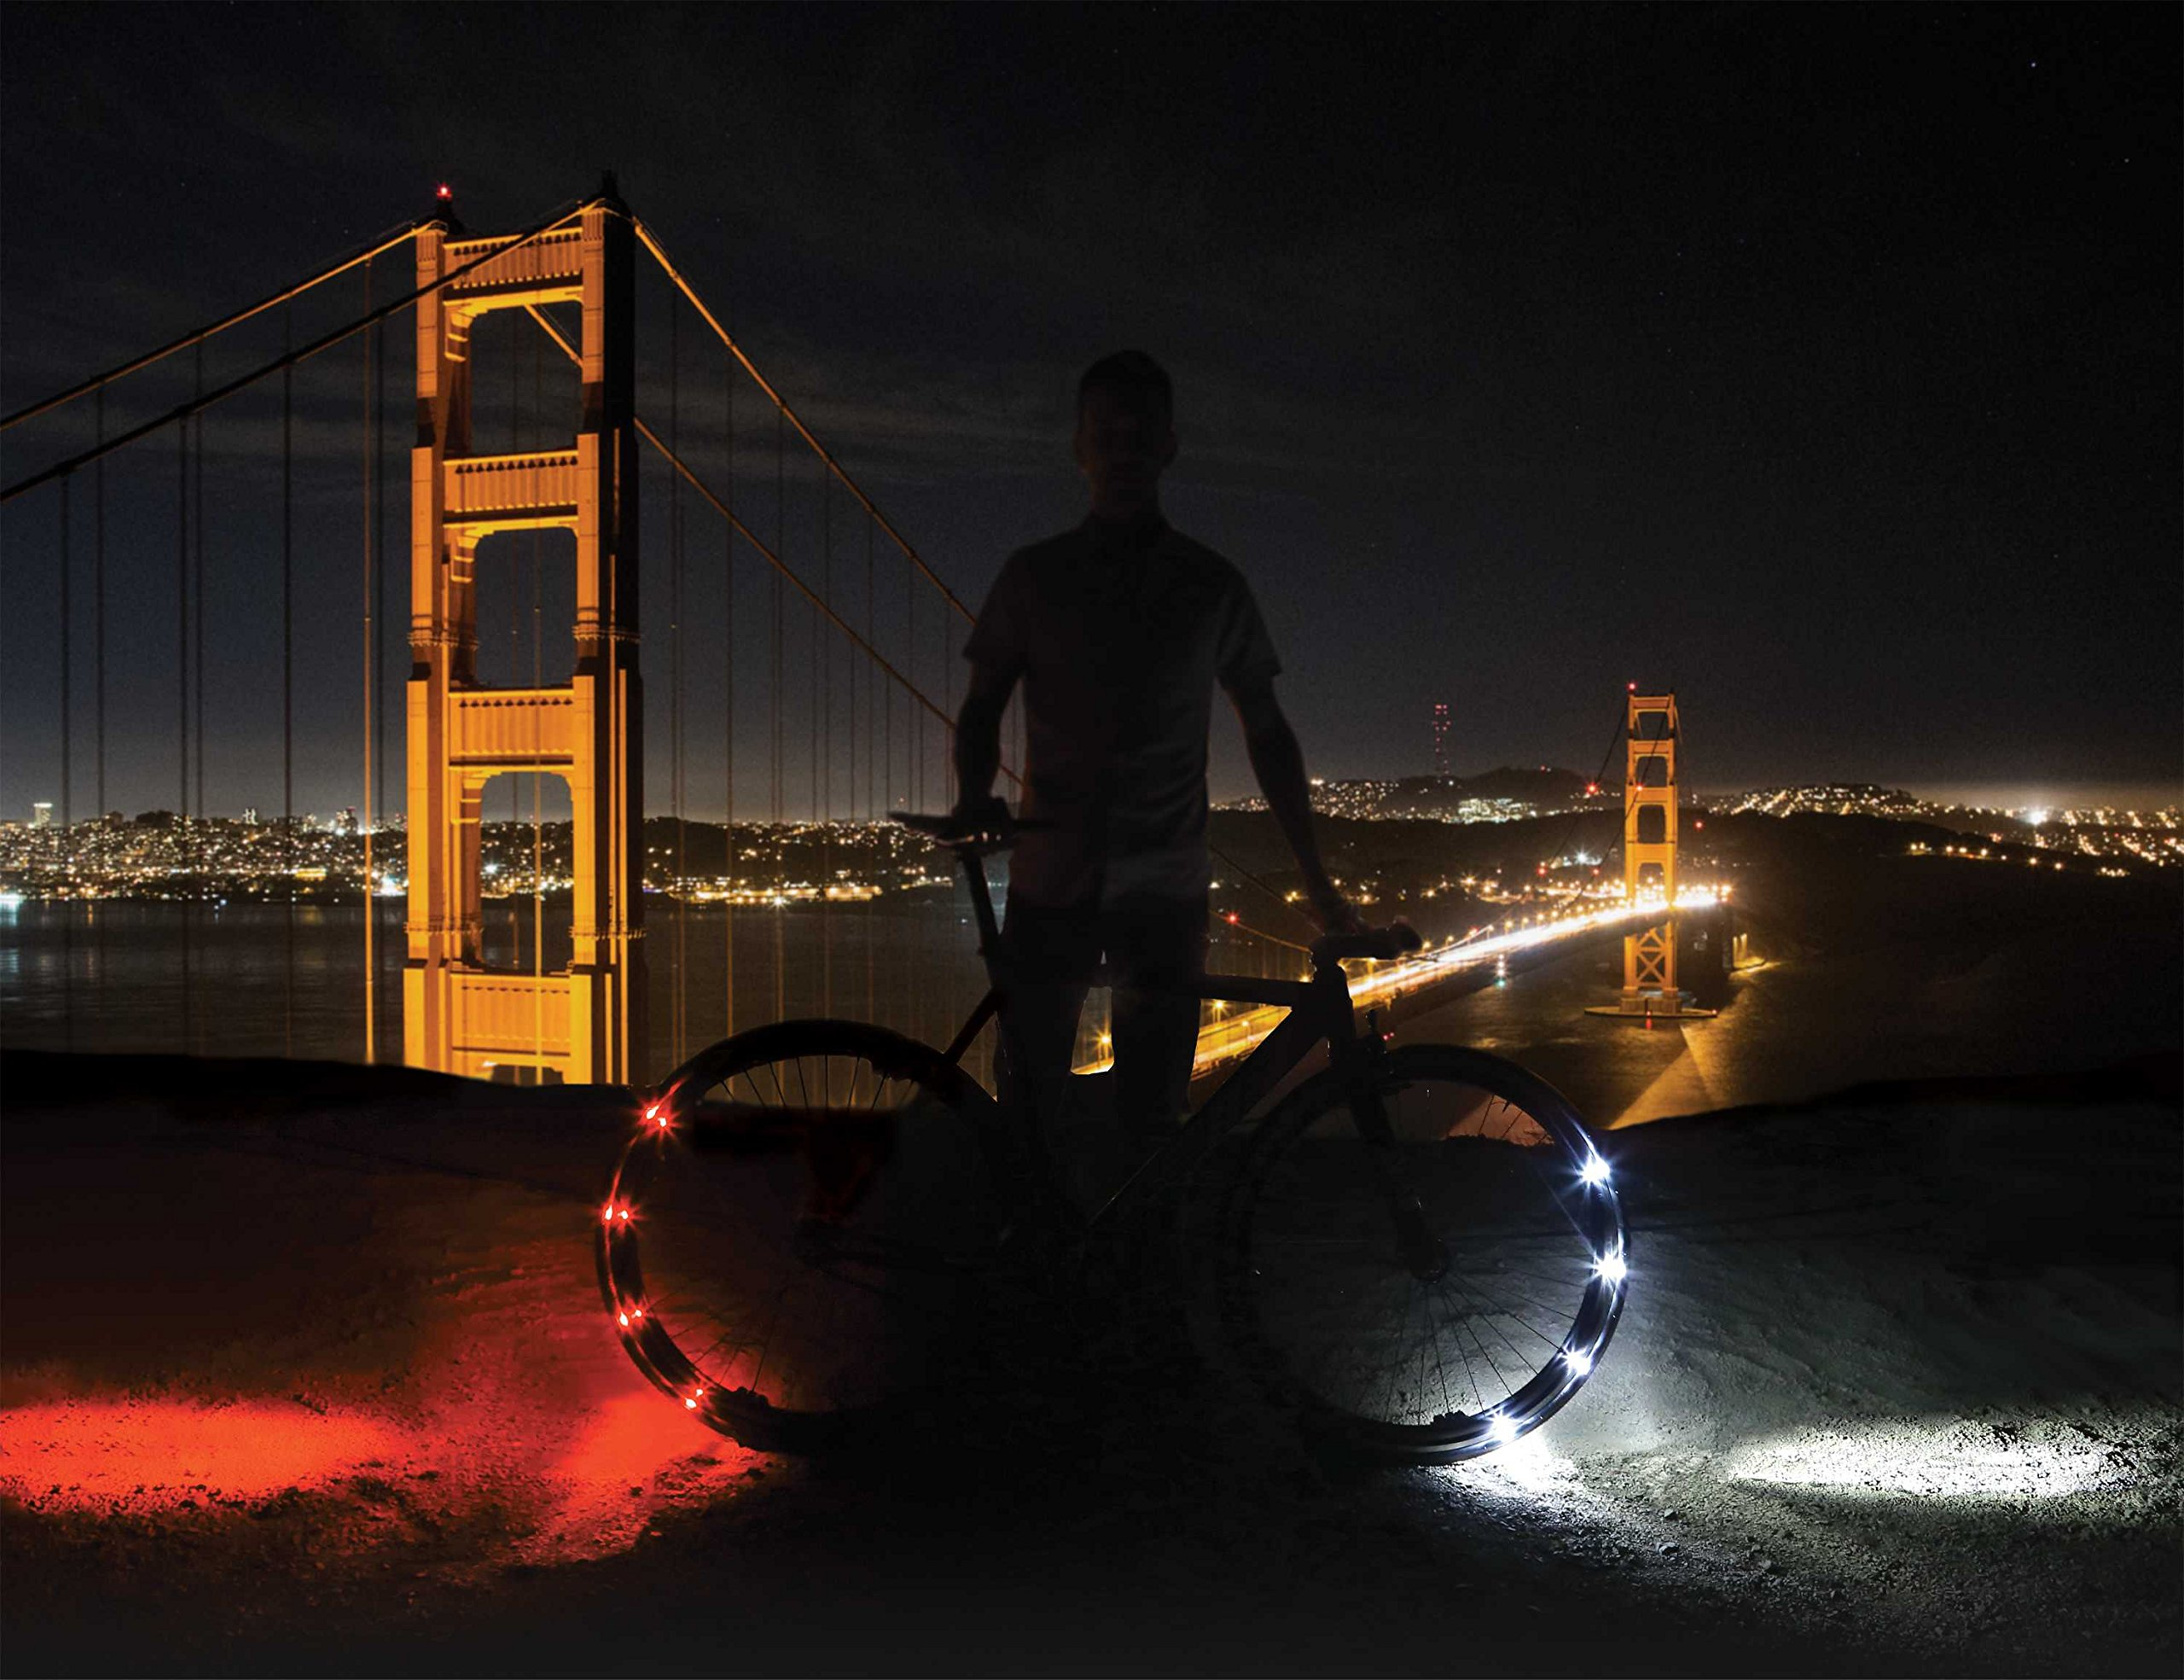 Revolights Eclipse Bicycle Lighting System, 700c/27-Inch by Revolights (Image #3)